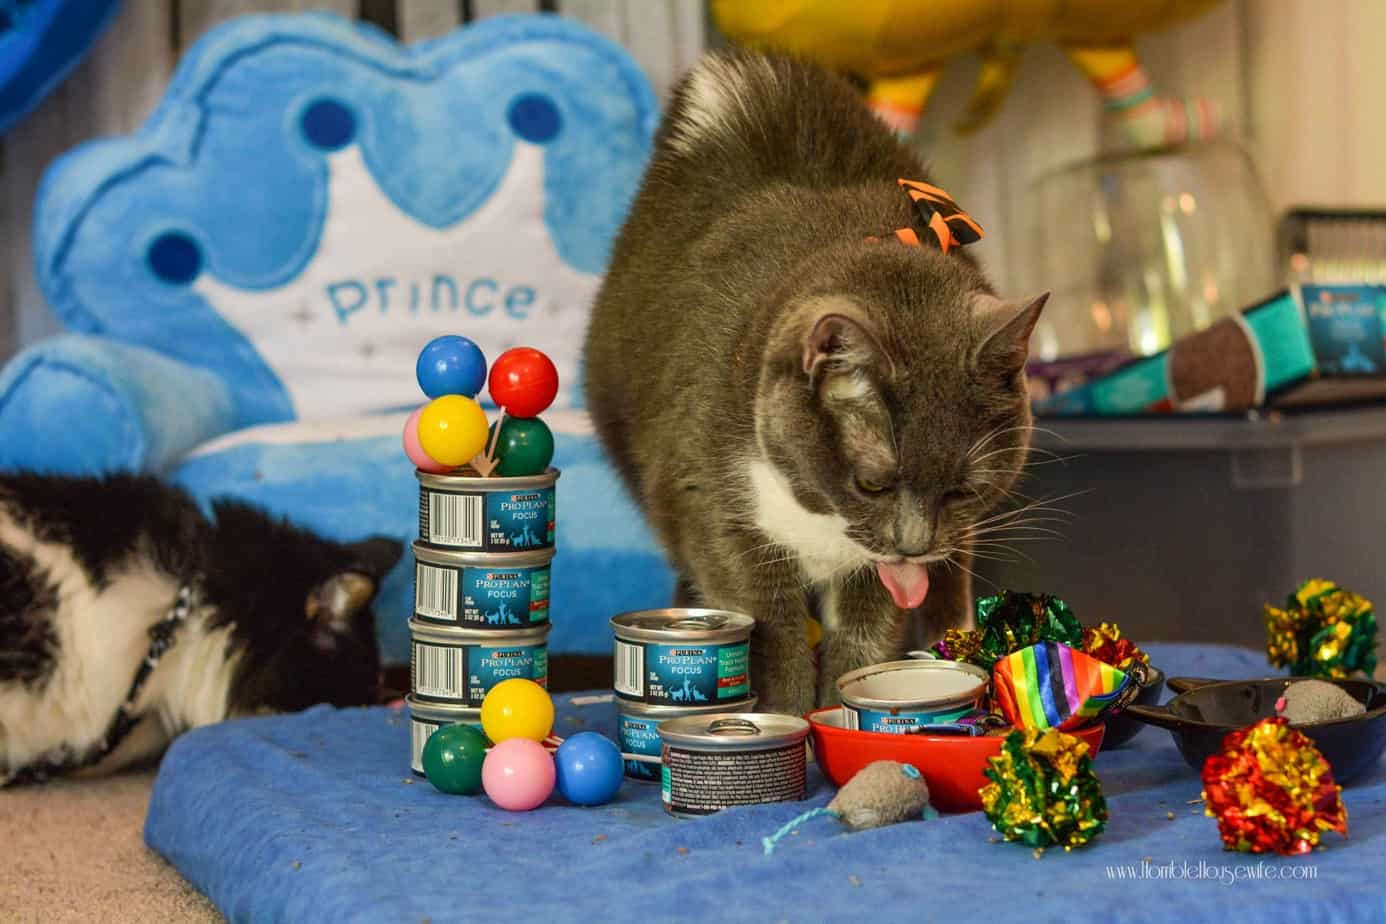 Wet cat food is perfect for a cat birthday party